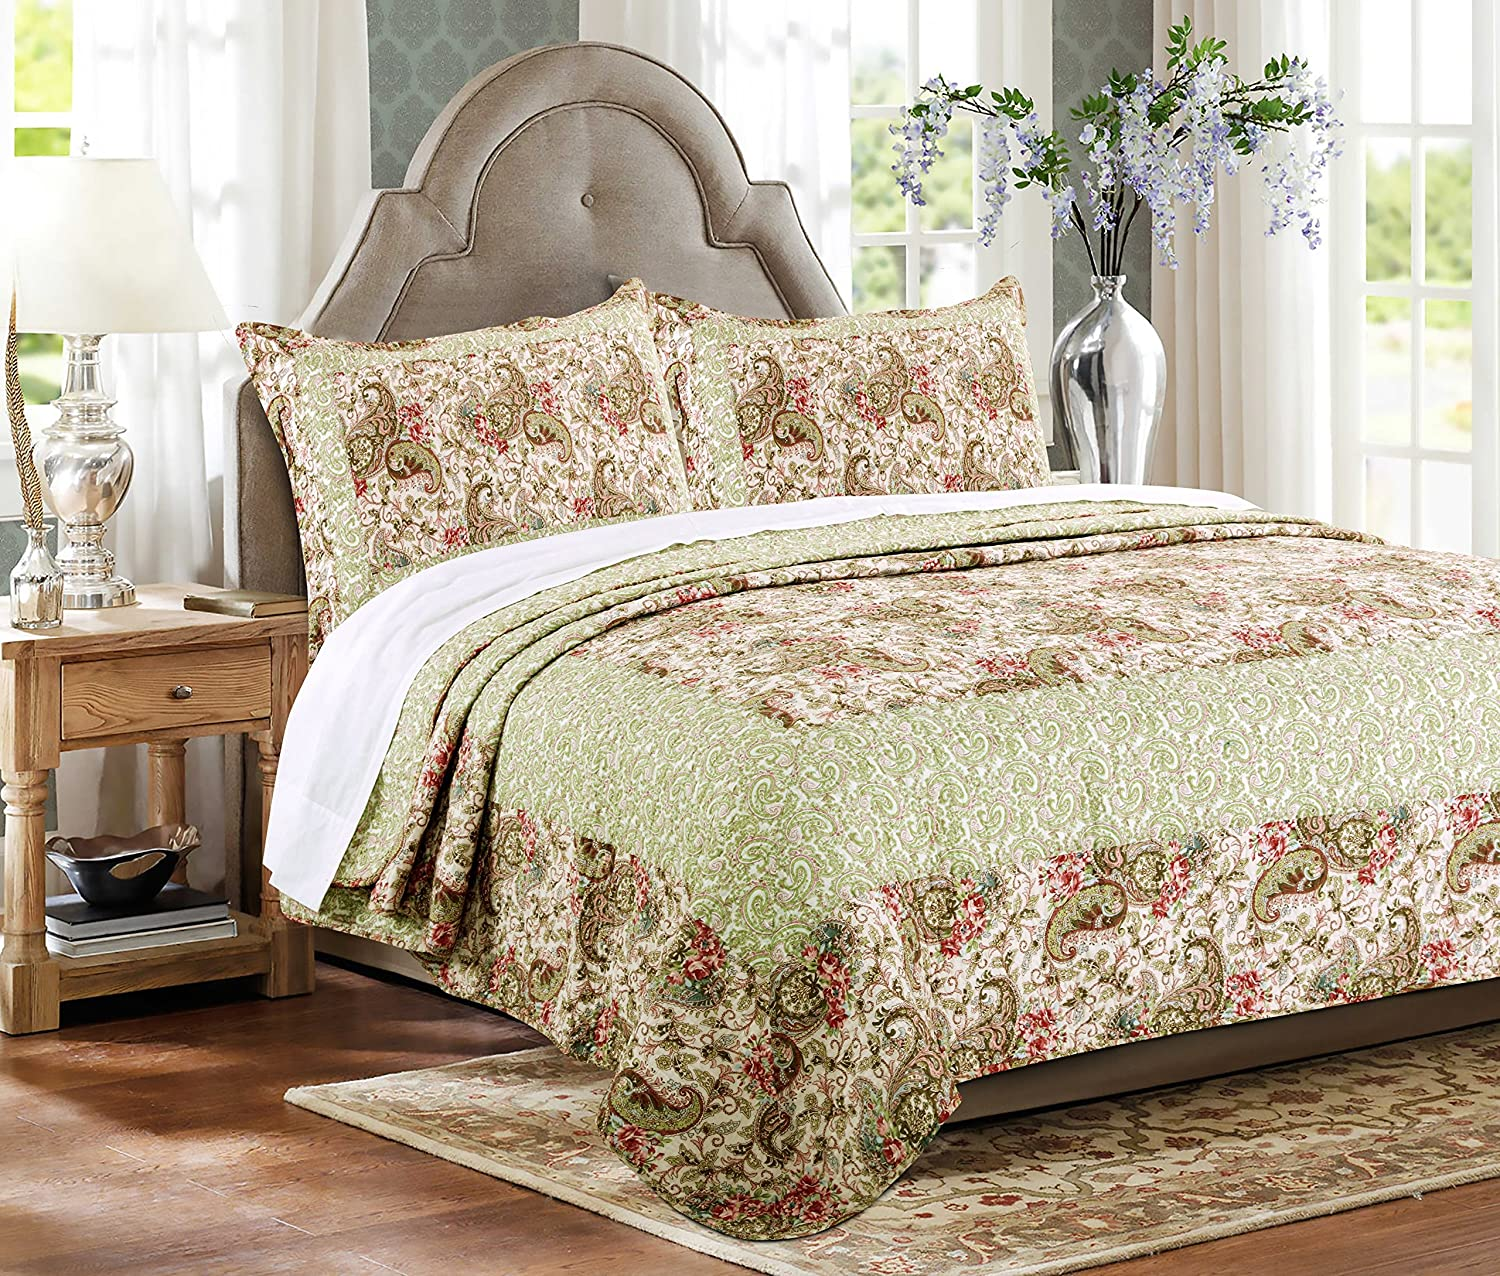 Greenland Home GL-1603ZK 3Piece Voltaire Quilt Set, King, Multicolor